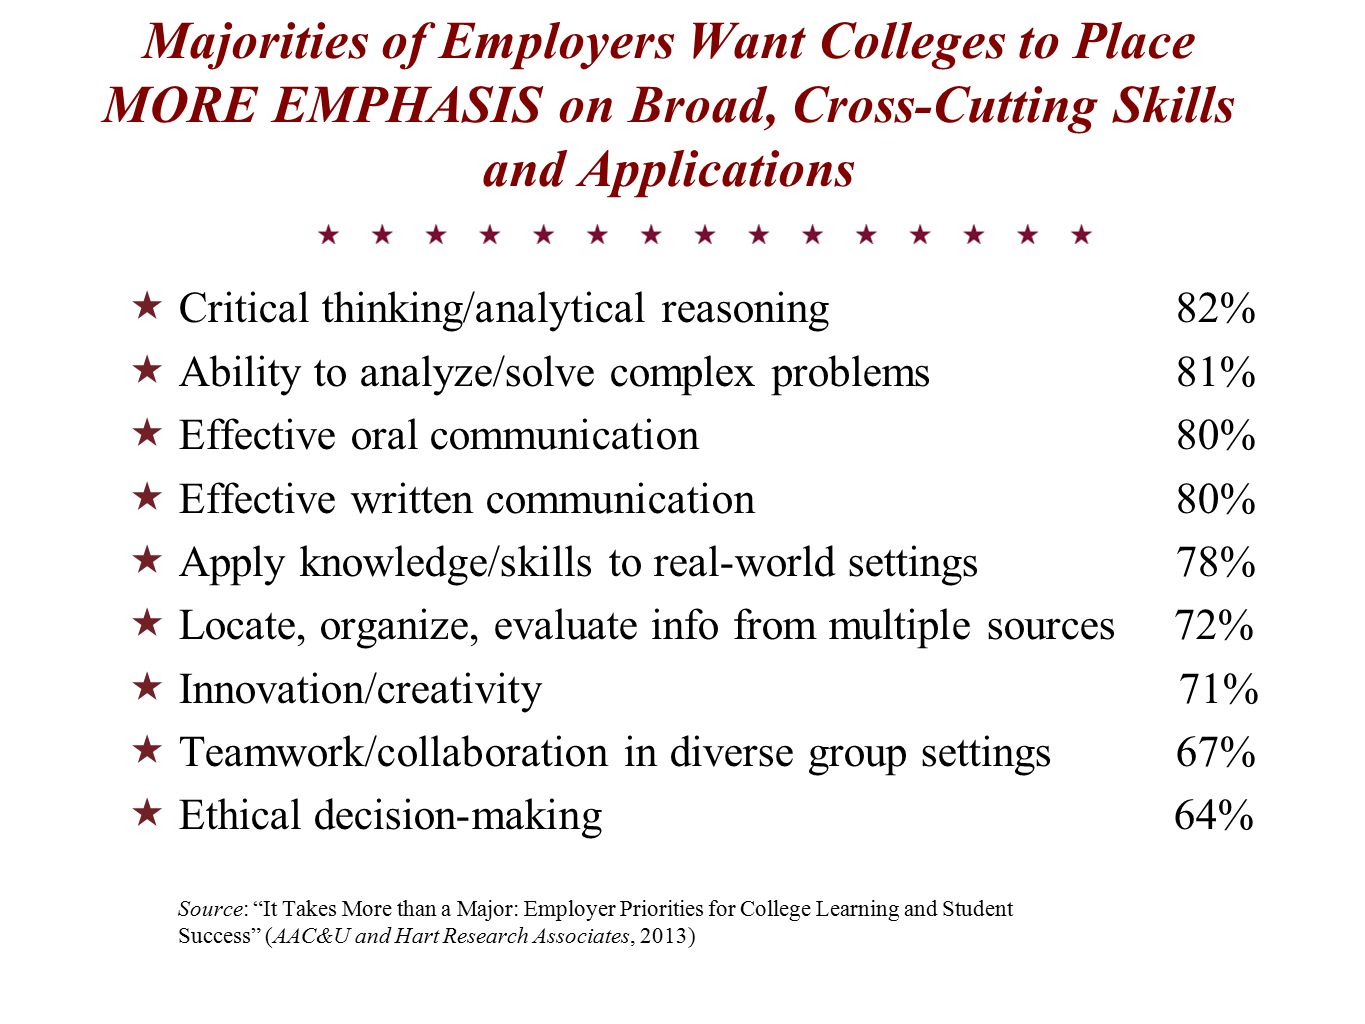 Majorities of Employers Want Colleges to Place MORE EMPHASIS on Broad, Cross-Cutting Skills and Applications  Critical thinking/analytical reasoning 82%  Ability to analyze/solve complex problems 81%  Effective oral communication 80%  Effective written communication 80%  Apply knowledge/skills to real-world settings 78%  Locate, organize, evaluate info from multiple sources 72%  Innovation/creativity 71%  Teamwork/collaboration in diverse group settings 67%  Ethical decision-making 64% Source: It Takes More than a Major: Employer Priorities for College Learning and Student Success (AAC&U and Hart Research Associates, 2013)